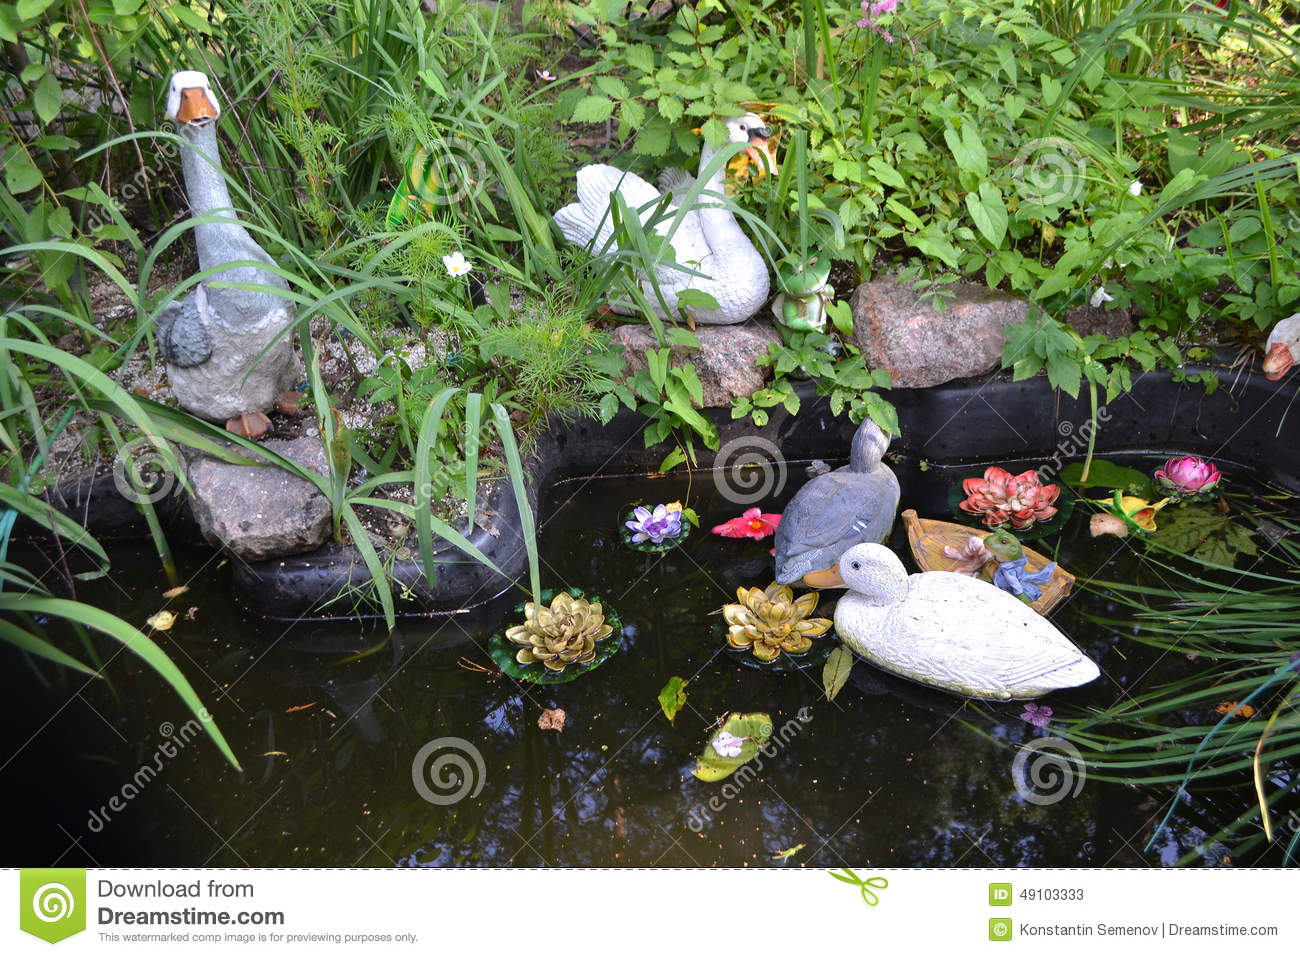 Artificial pond with toy ducks stock image image of for Artificial pond